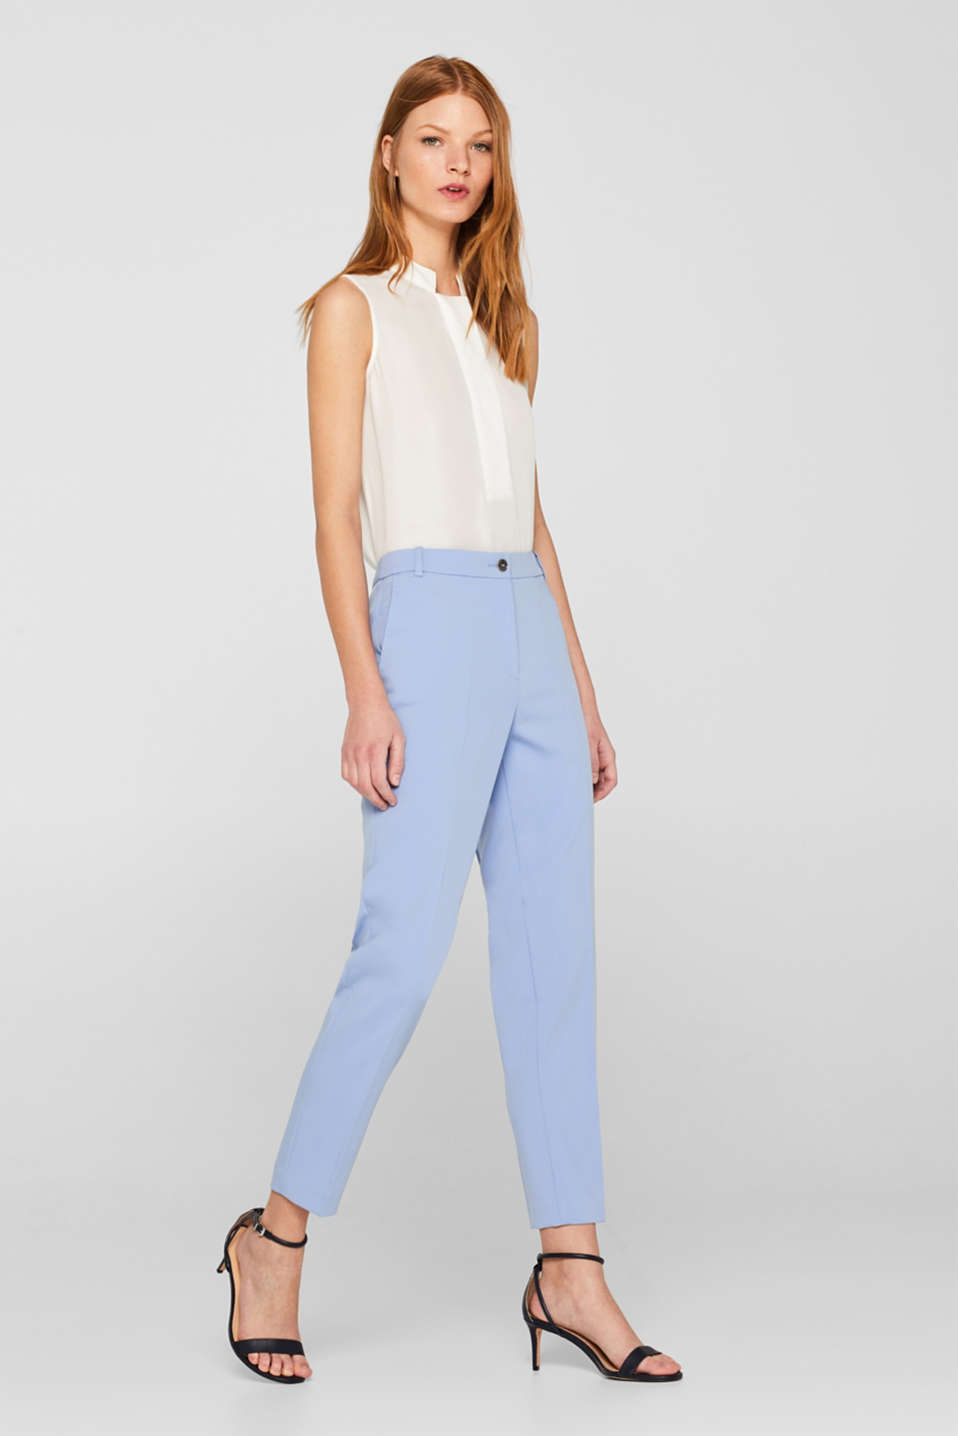 SPRING Mix + Match stretch trousers, LIGHT BLUE, detail image number 1